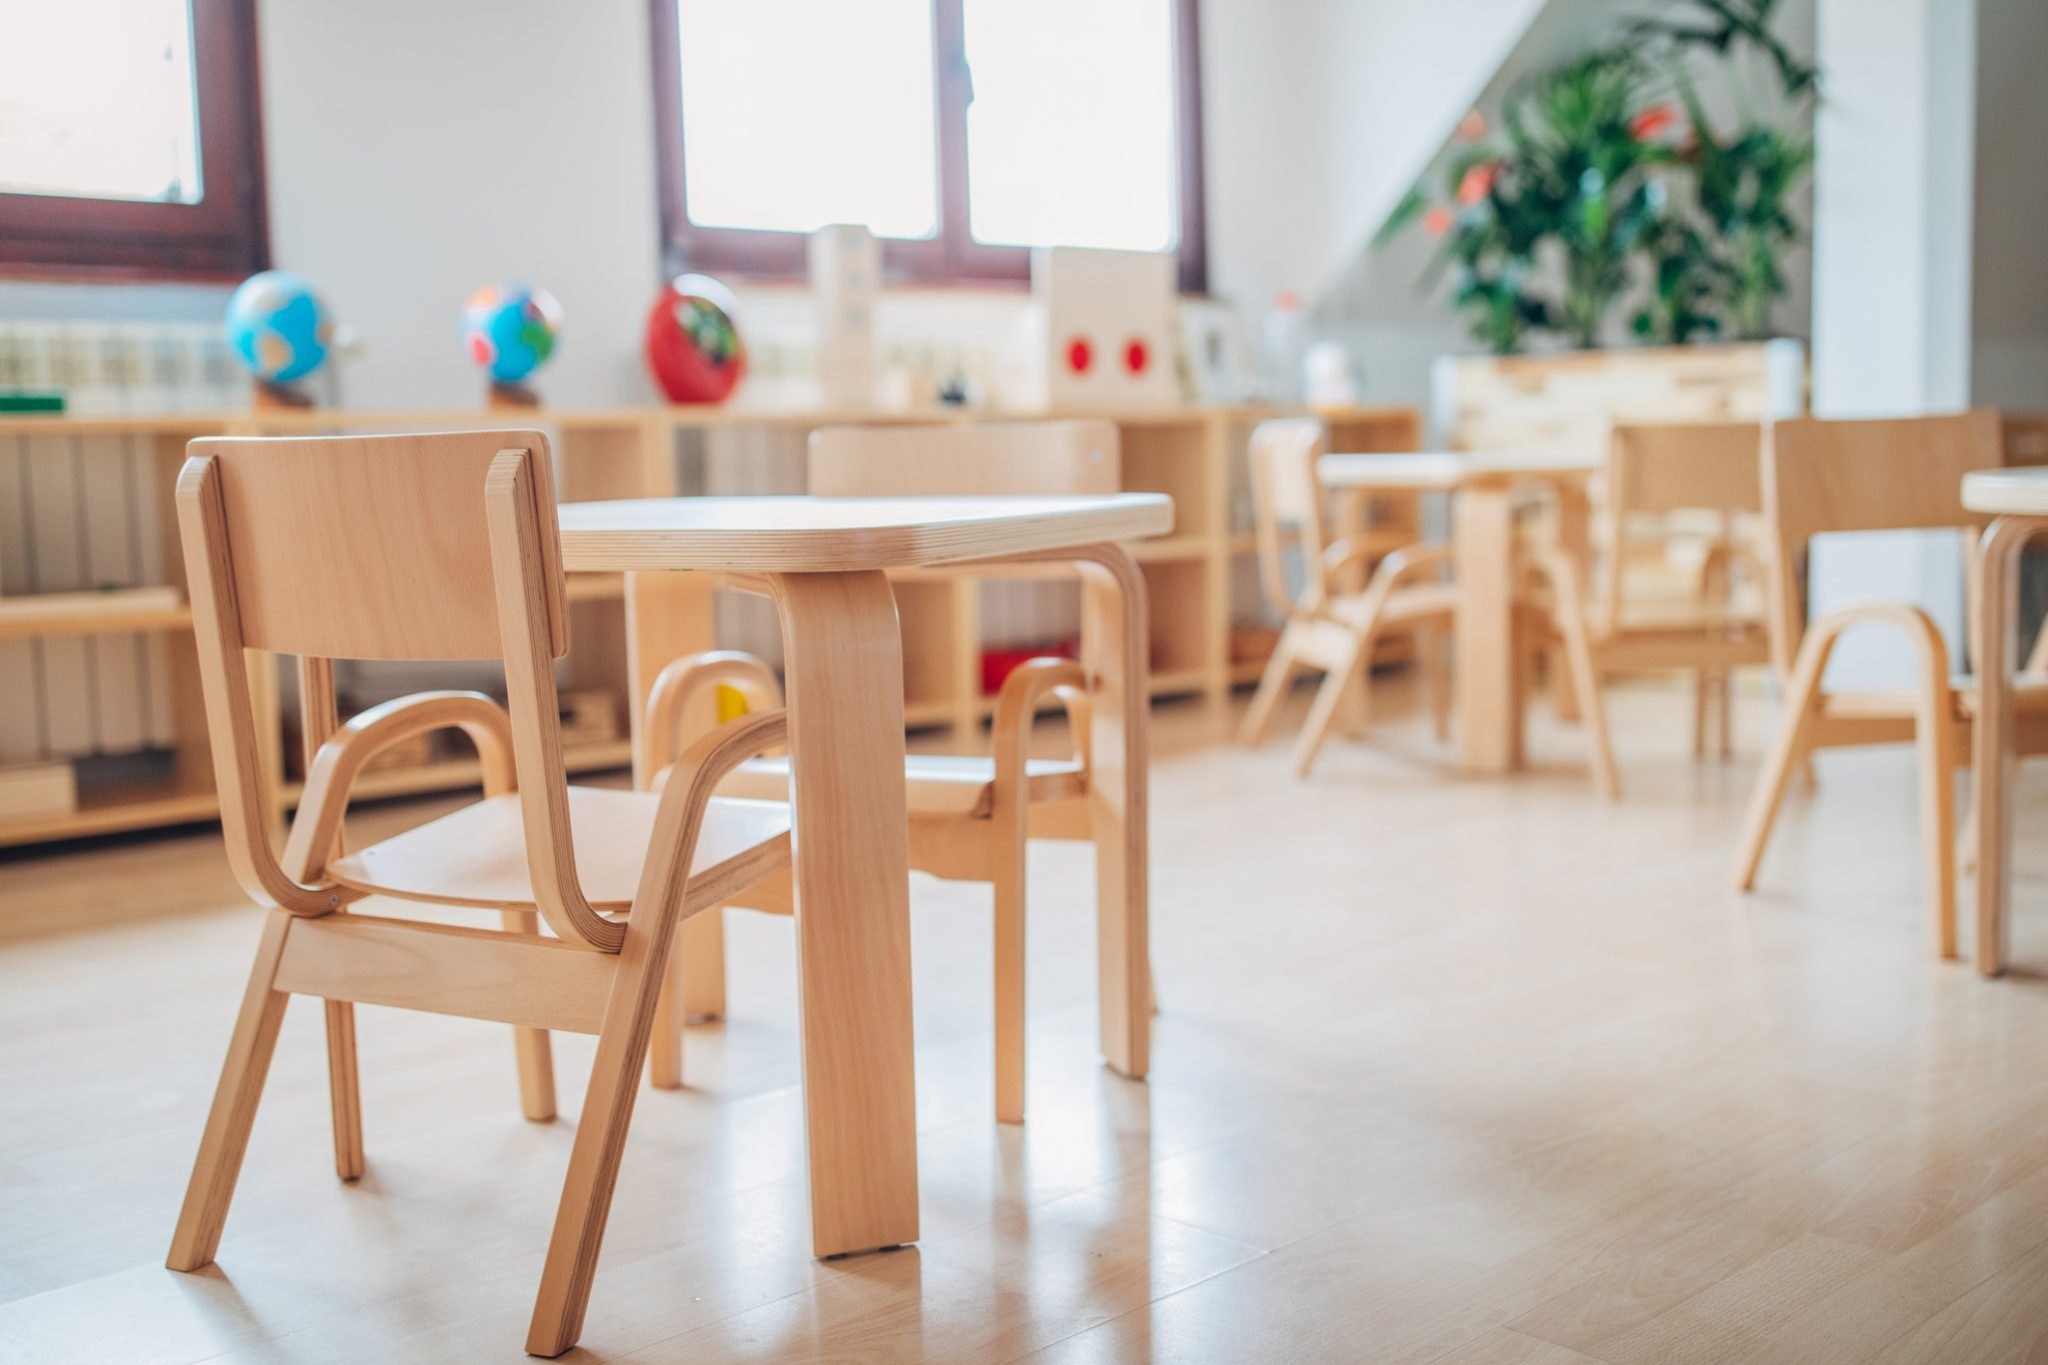 Here's some things we can do to fix the shortage of child care | Opinion